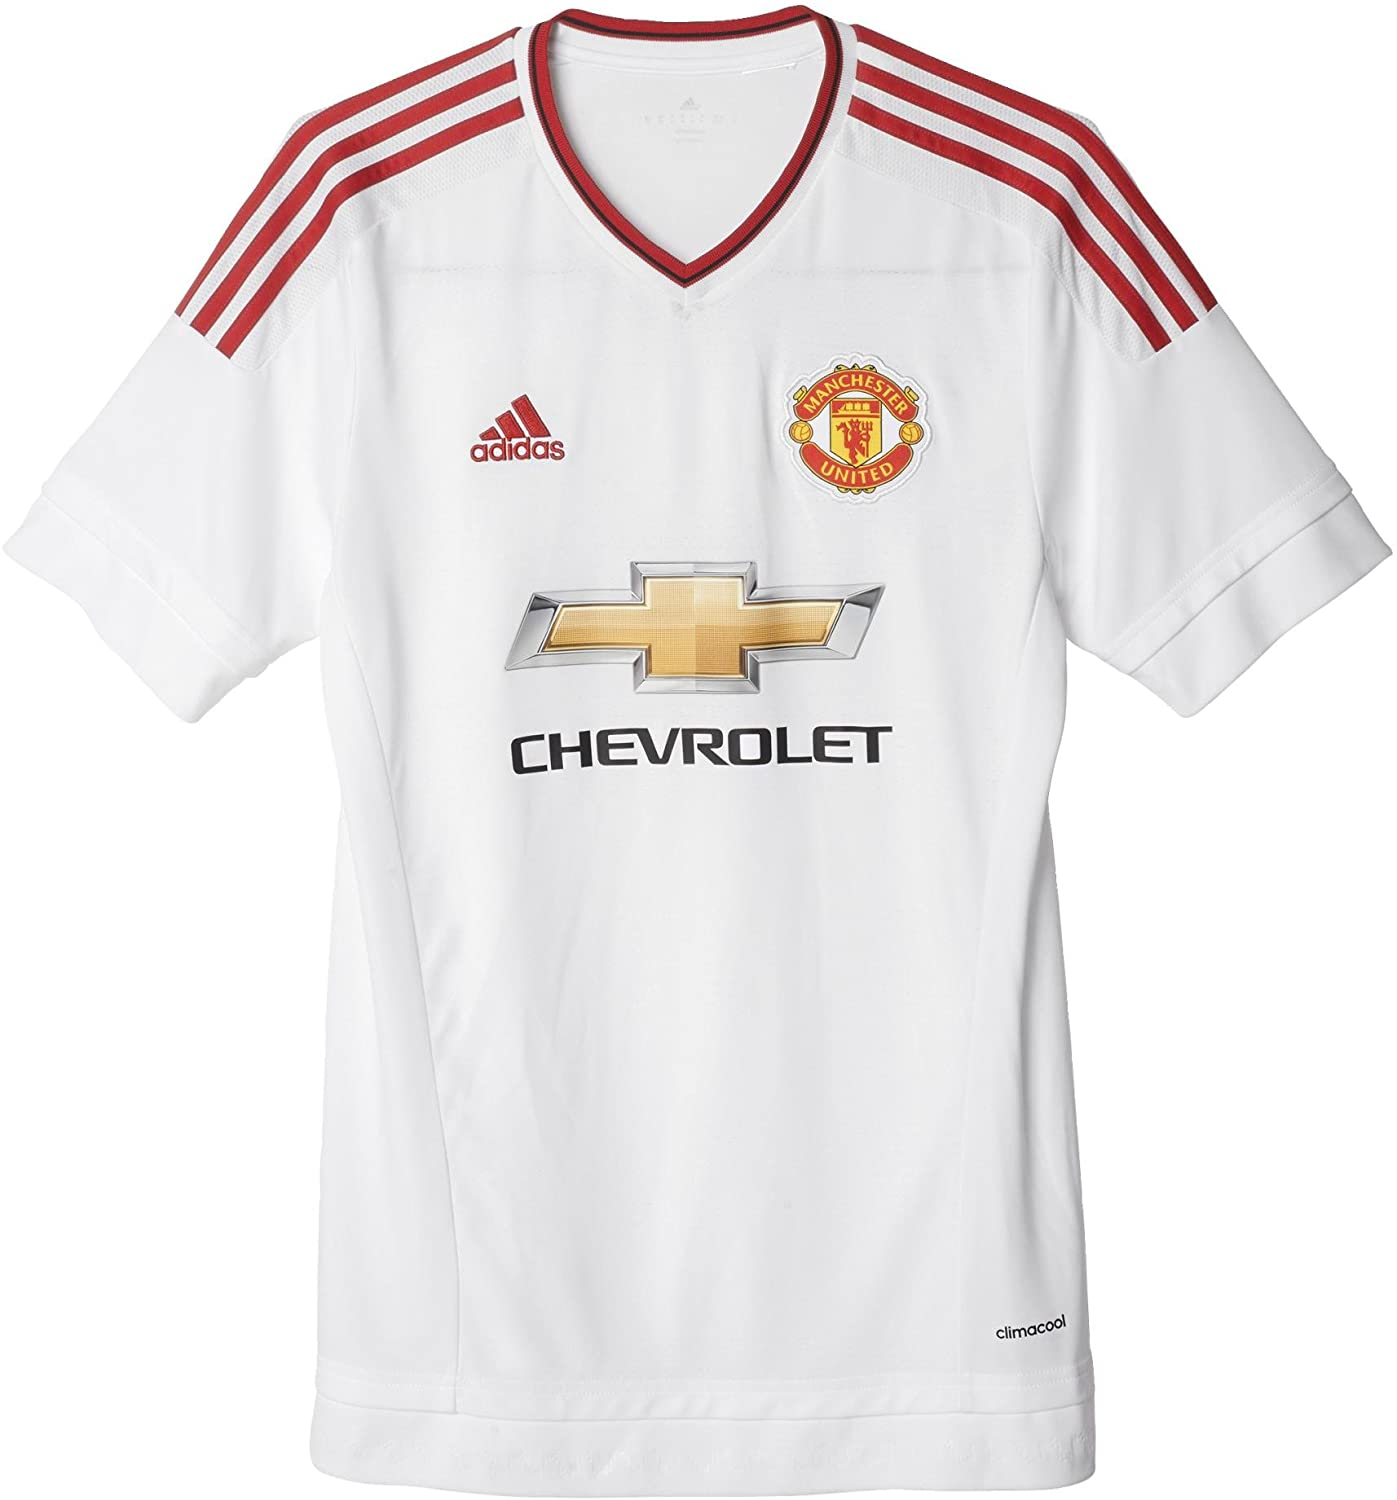 adidas Manchester United FC Away Jersey White//REARED